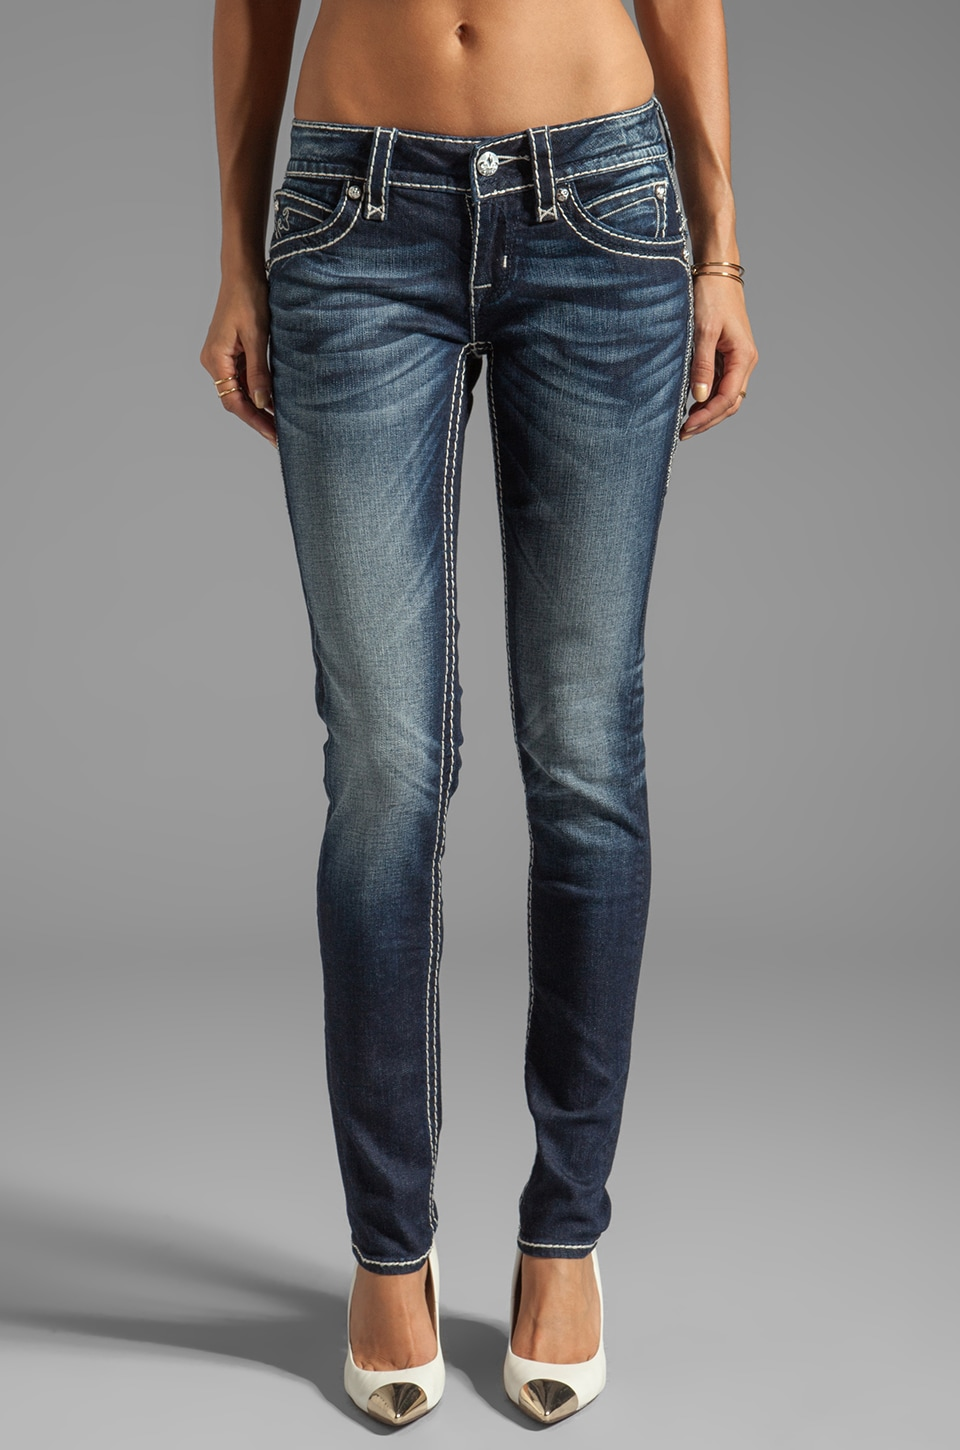 Rock Revival Heather Skinny in S28